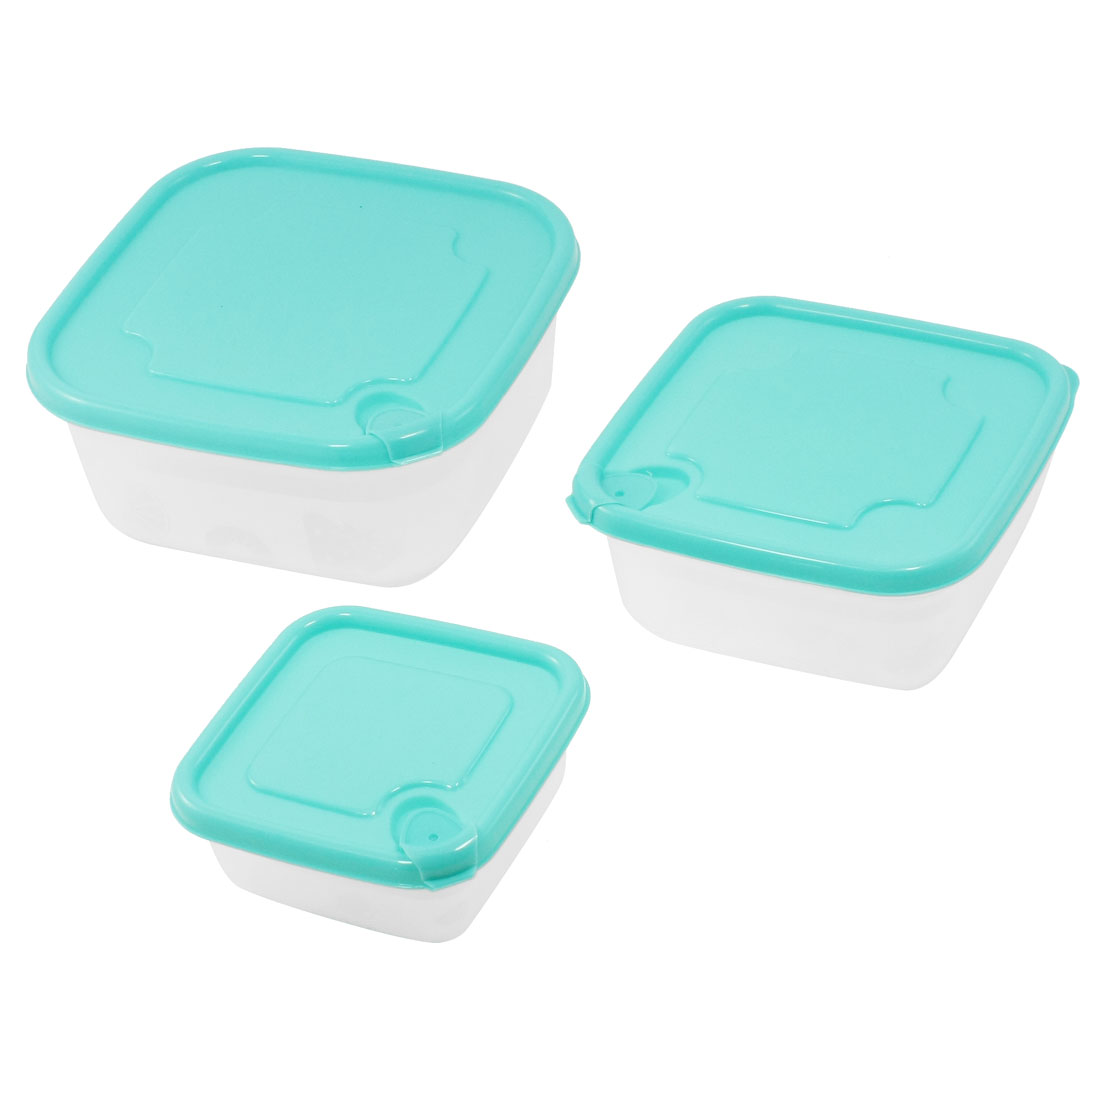 Kitchenware Cyan Clear Plastic Refreshing Airtight Case Crisper Set 3 in 1